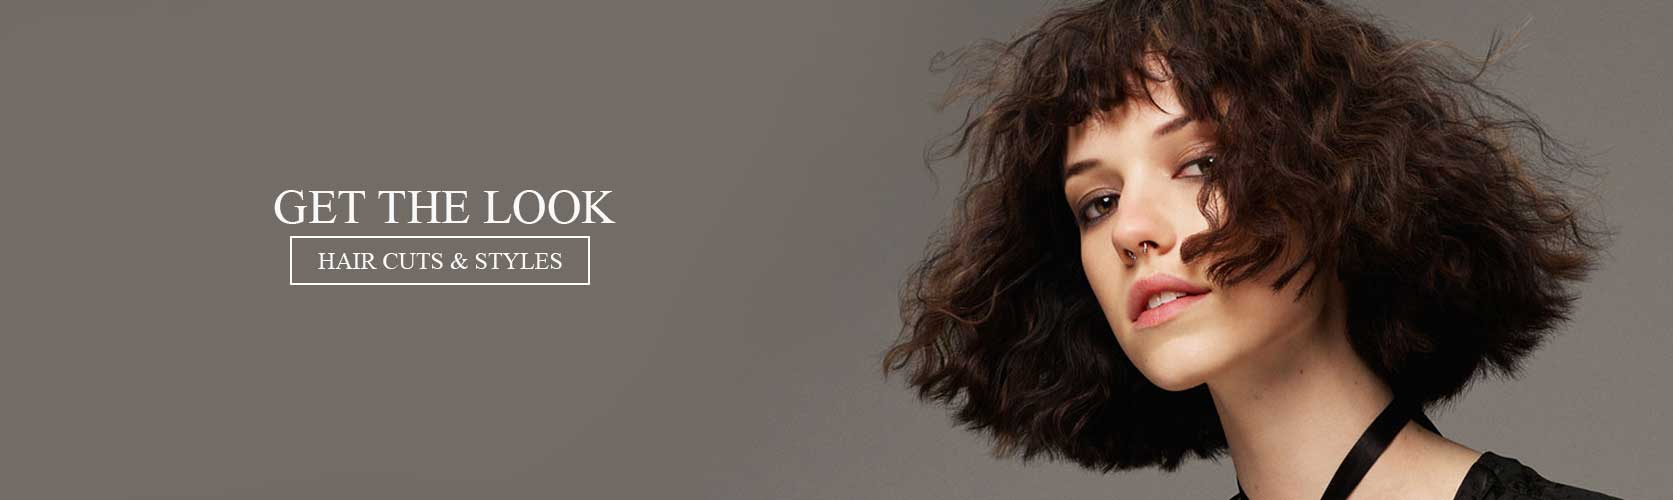 Hair Cuts & Styling in Durham at The Salon Langley Park